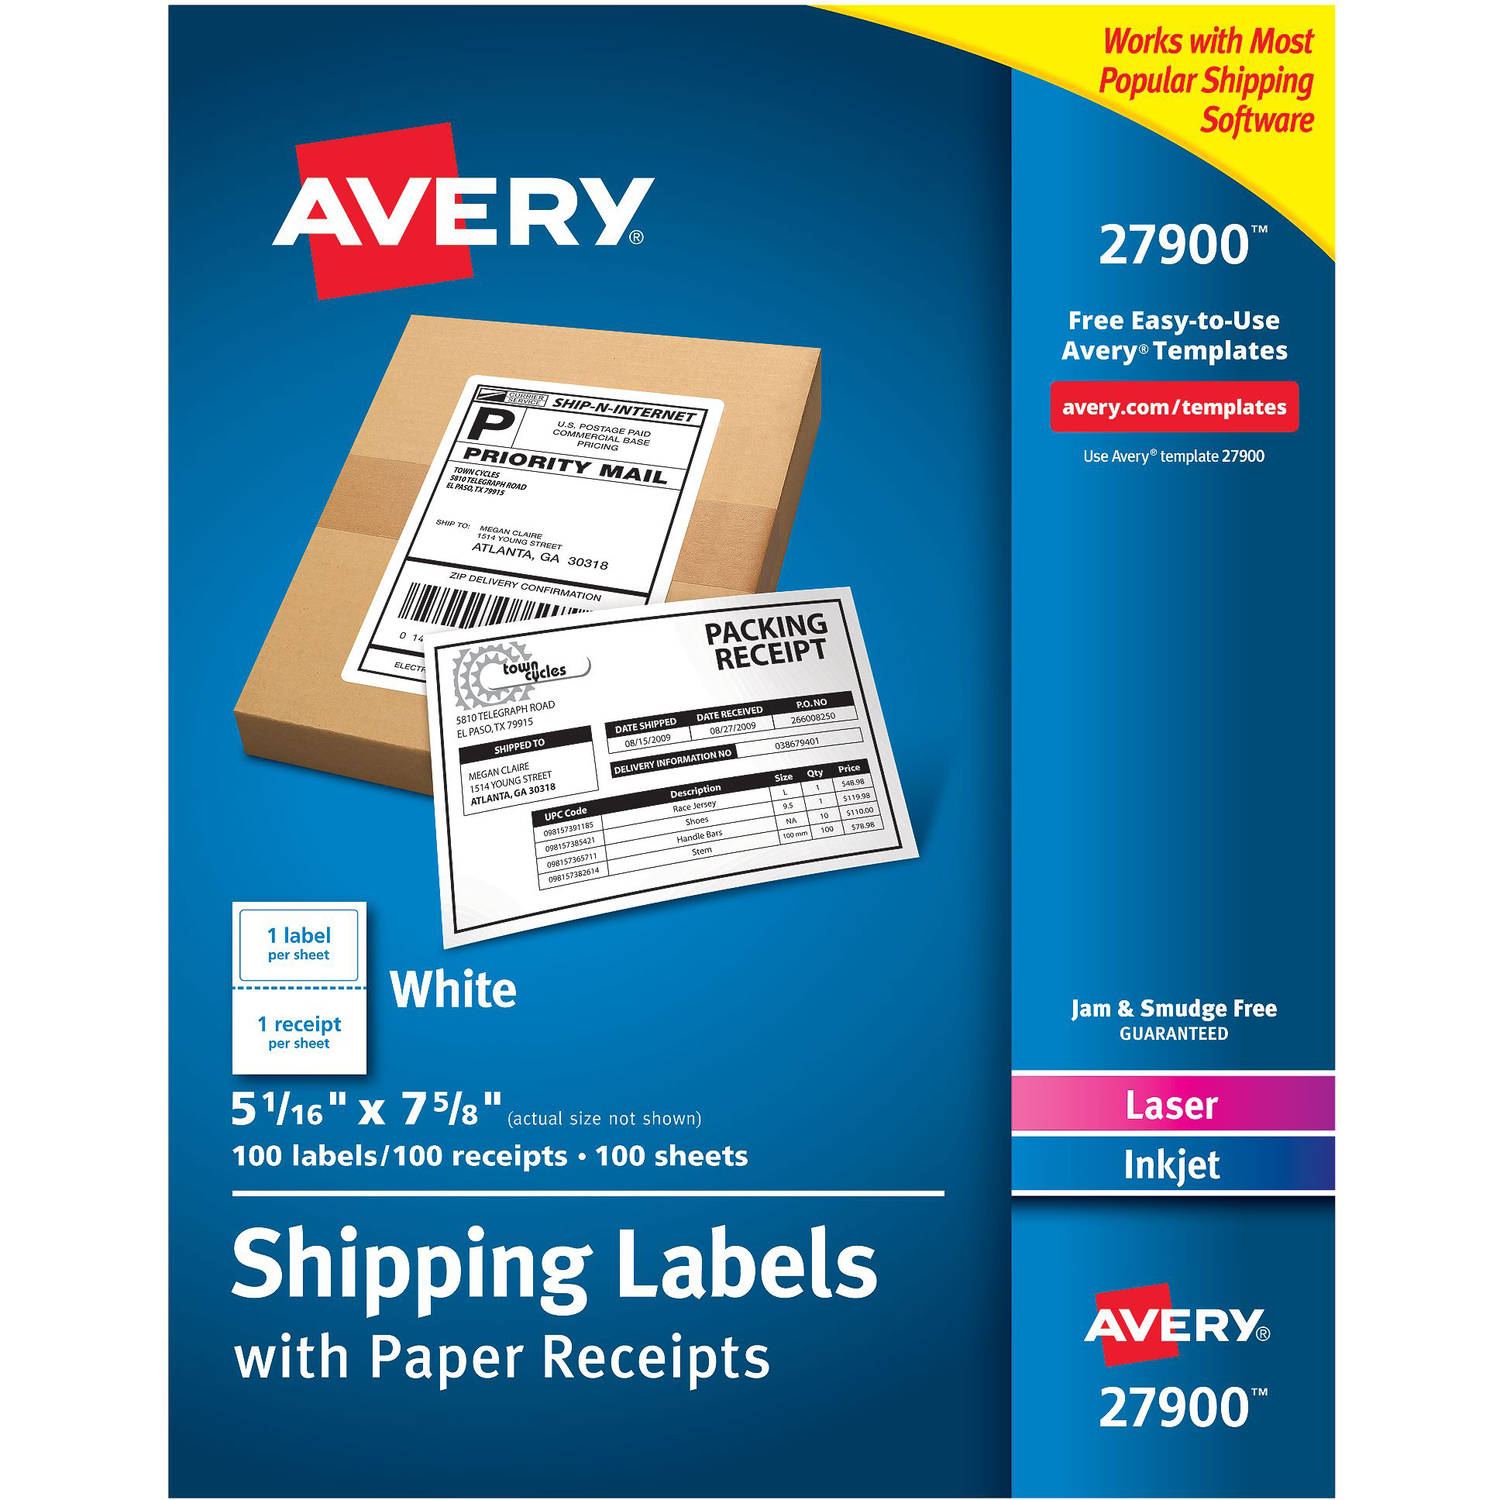 Avery Shipping Labels with Paper Receipts, White, 100-Pack (27900)